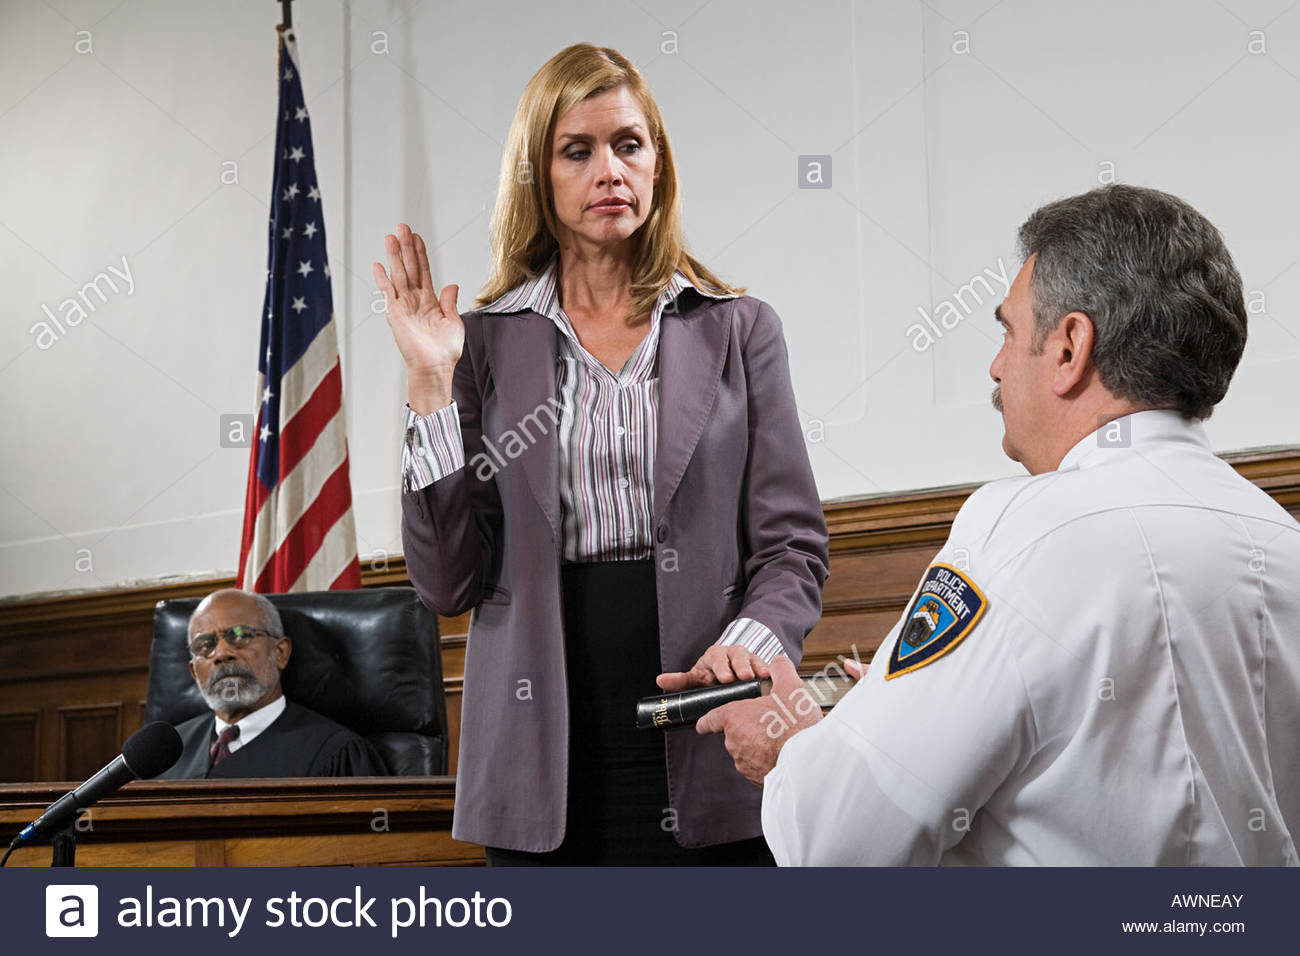 Oath for a juror or for a witness in a trial - Support Login